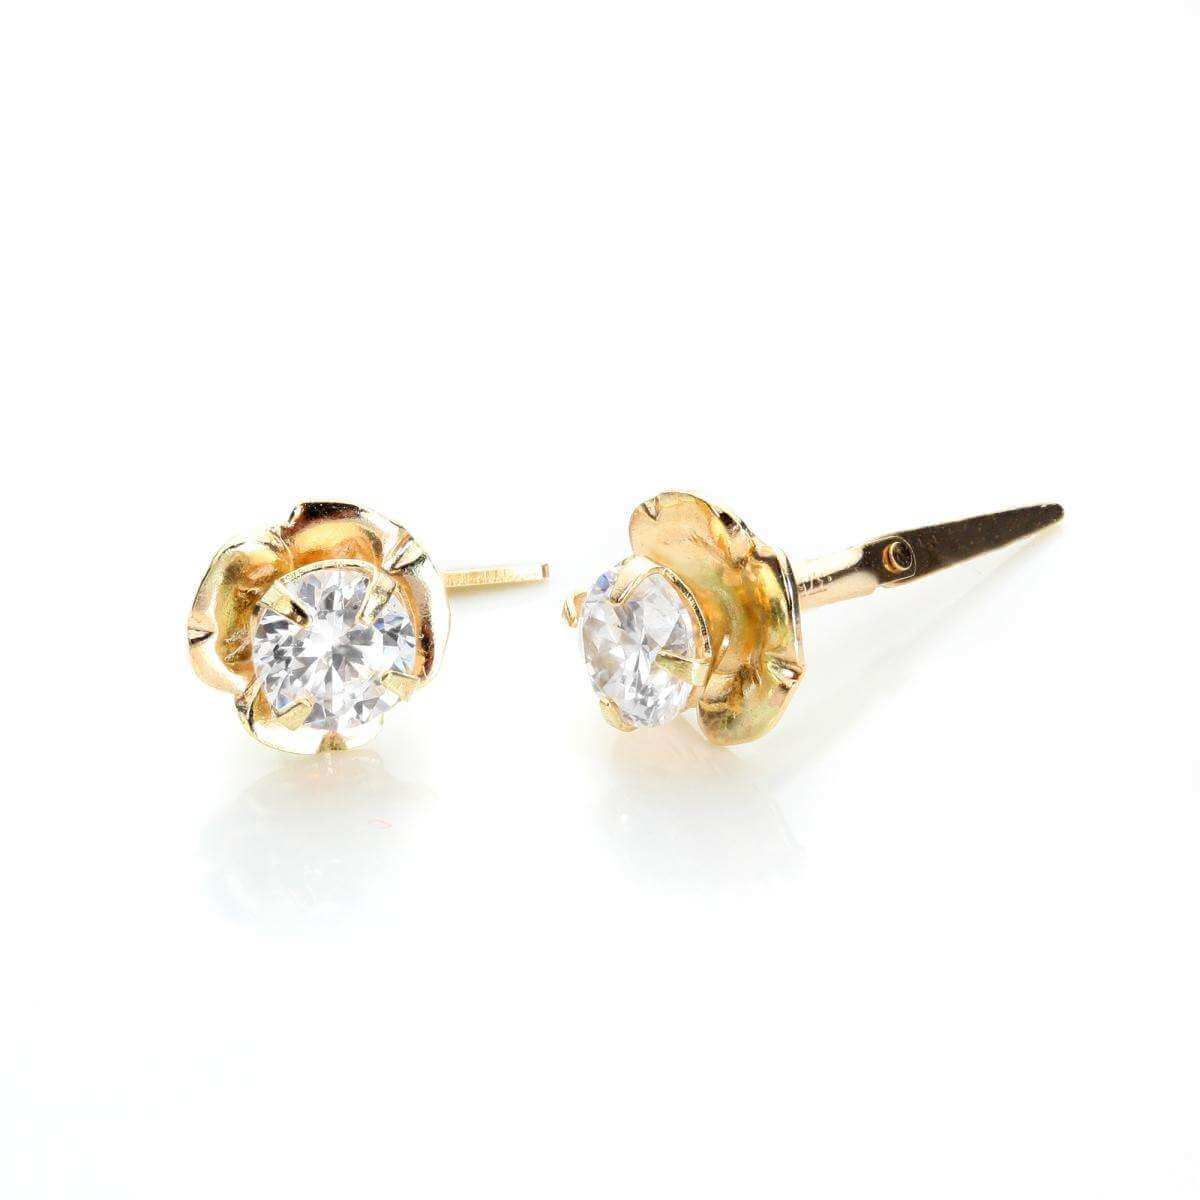 Andralok 9ct Yellow Gold Crystal 3.5mm Flower Stud Earrings